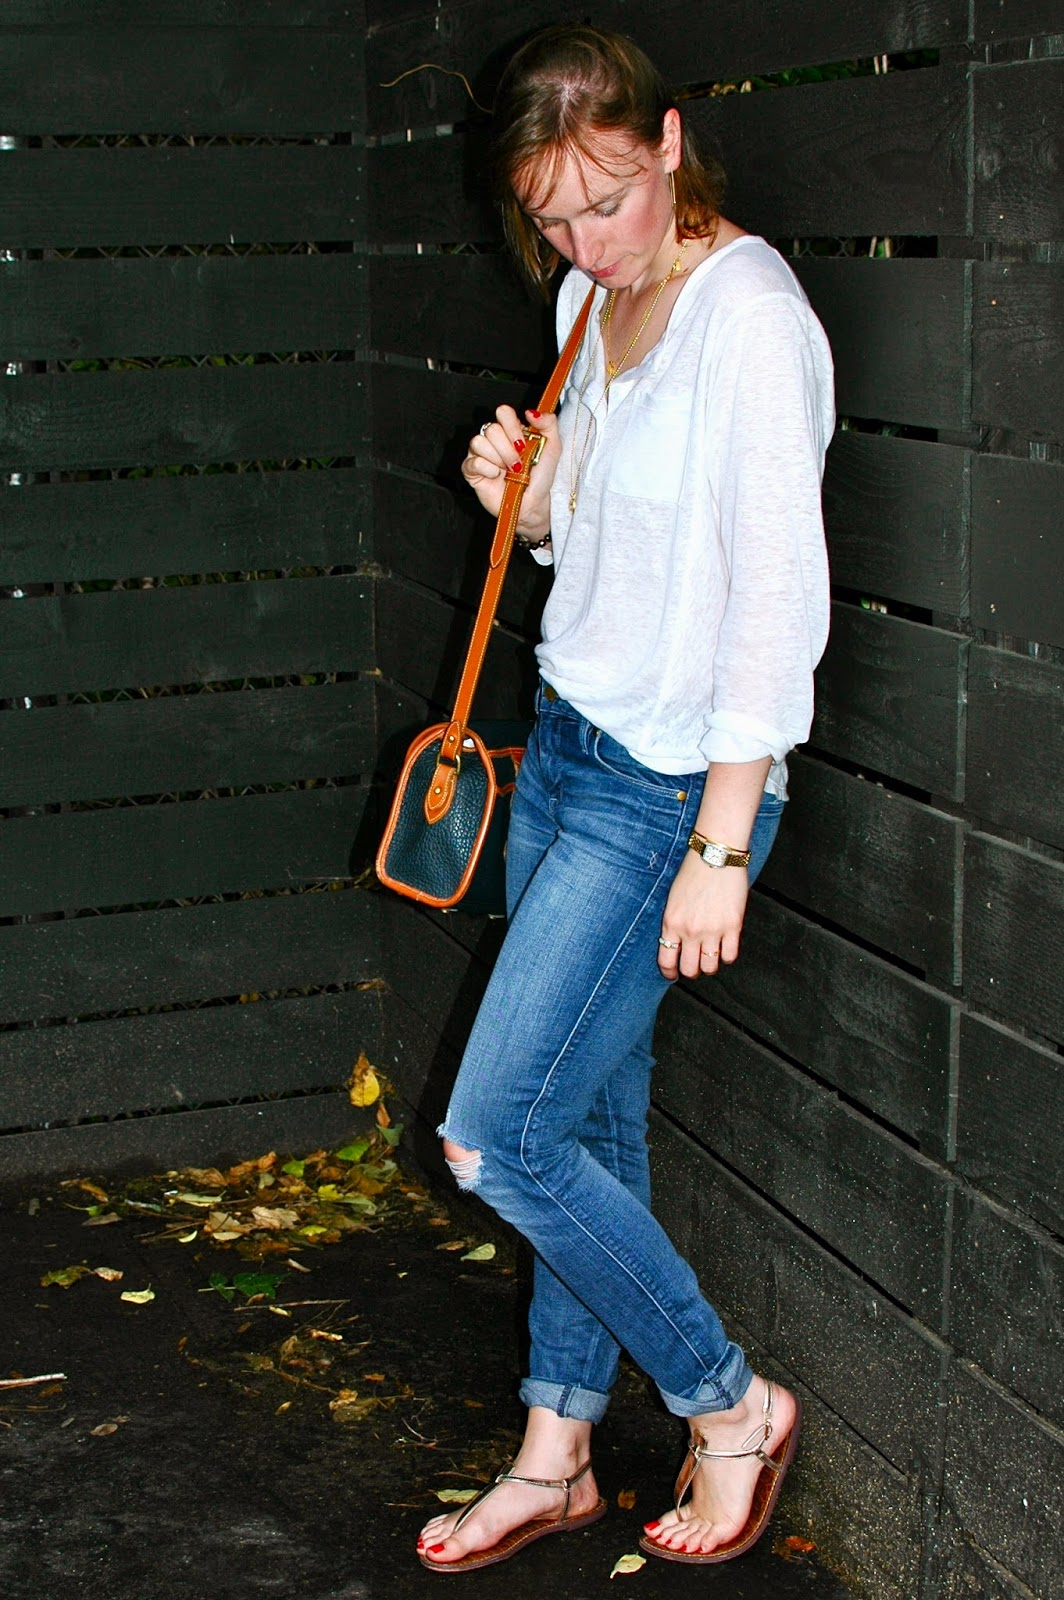 Distressed Denim, White Tee, Cross Body Bag, Dooney & Bourke, Sam Edelman, Nashville Style, Laid Back Style